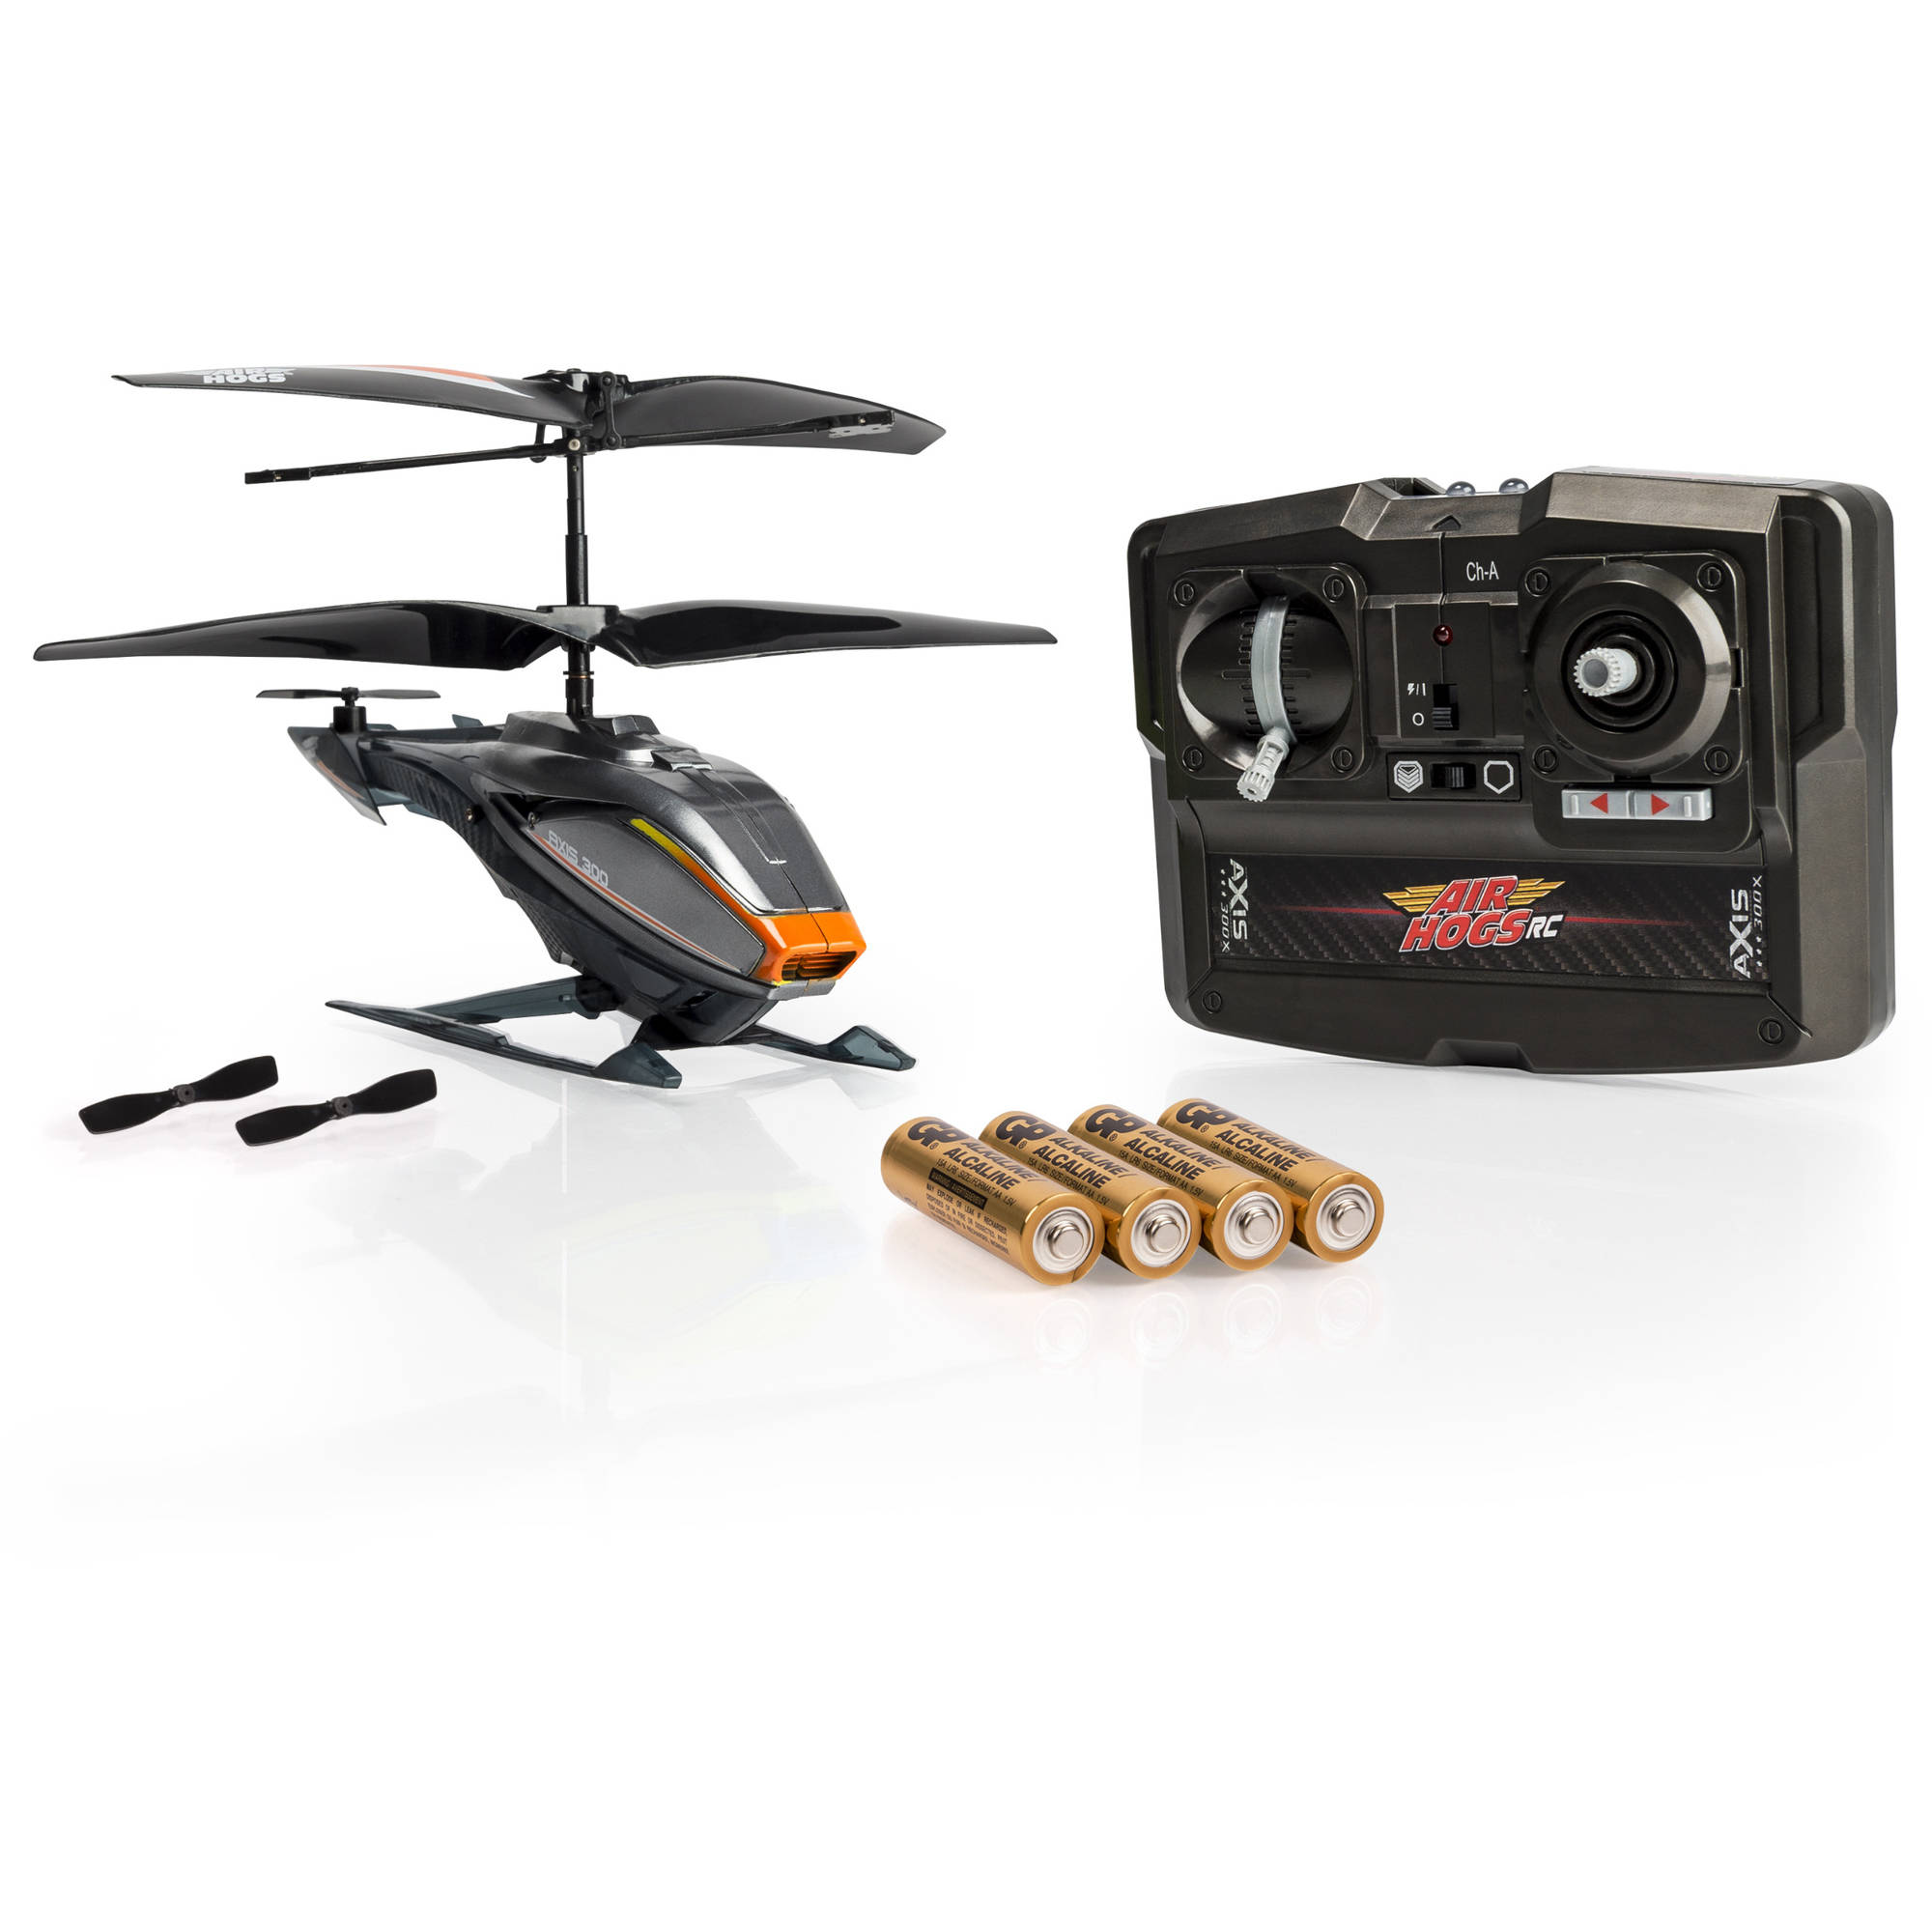 Air Hogs RC Axis 300X, Gray R/C Helicopter with Batteries